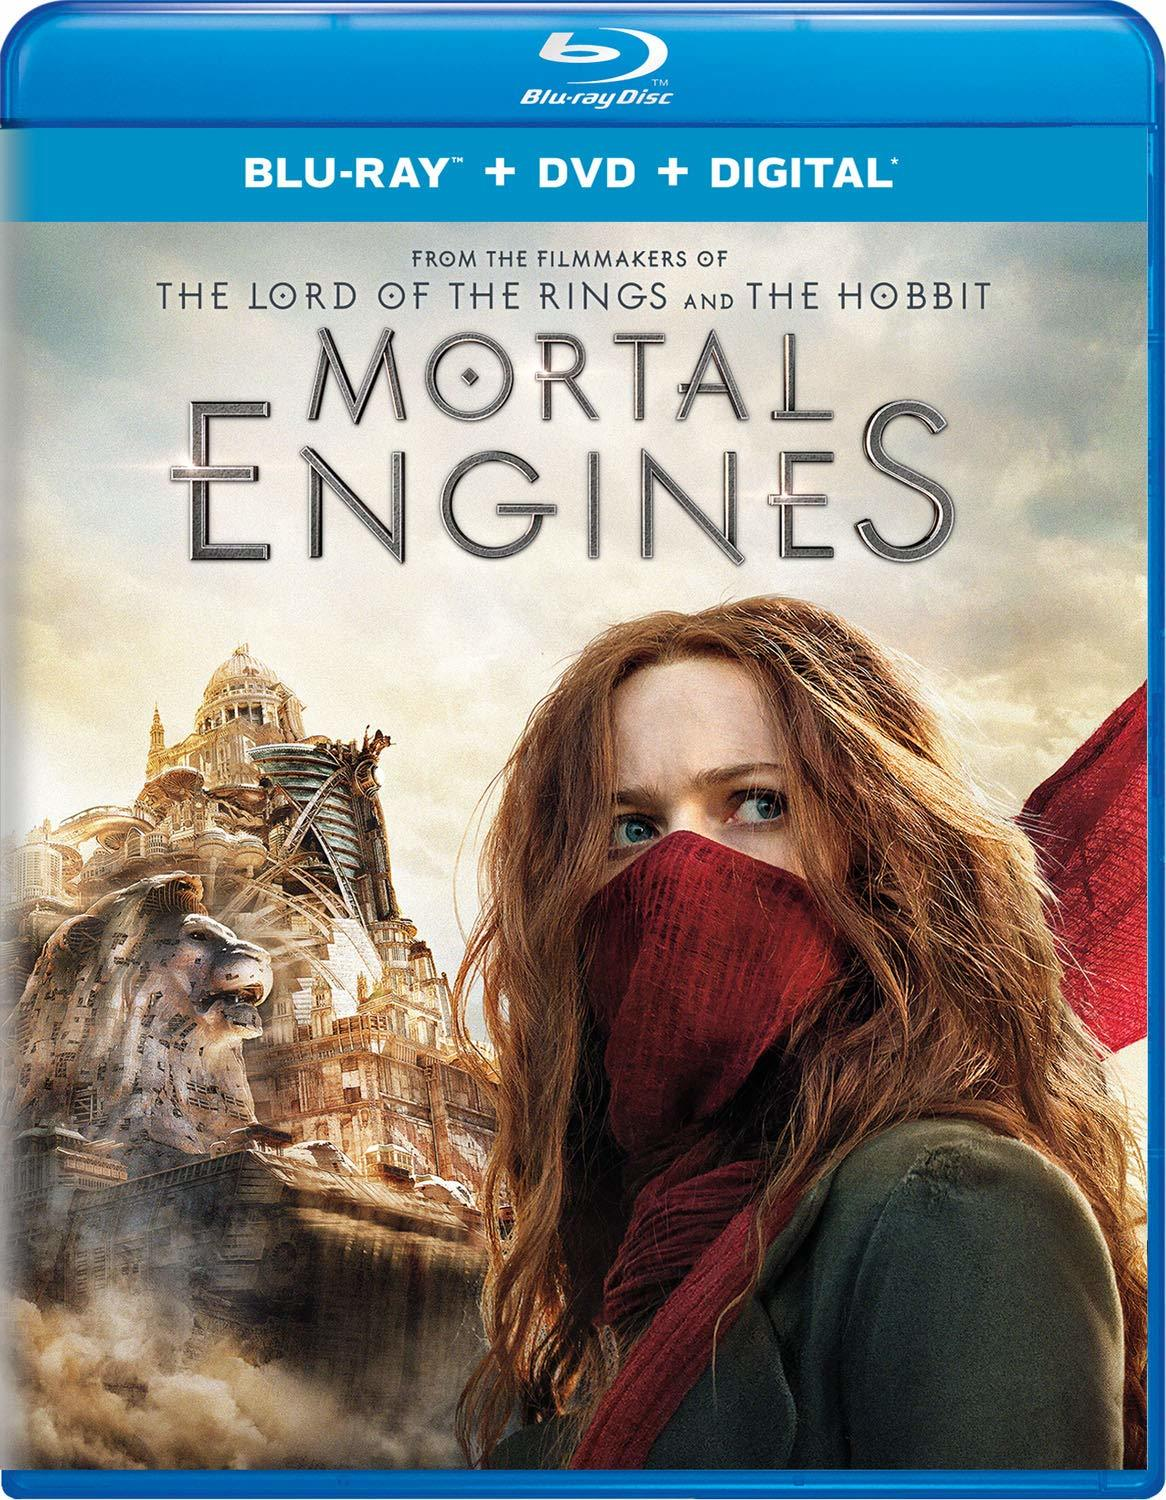 Mortal Engines 2018 720p BluRay